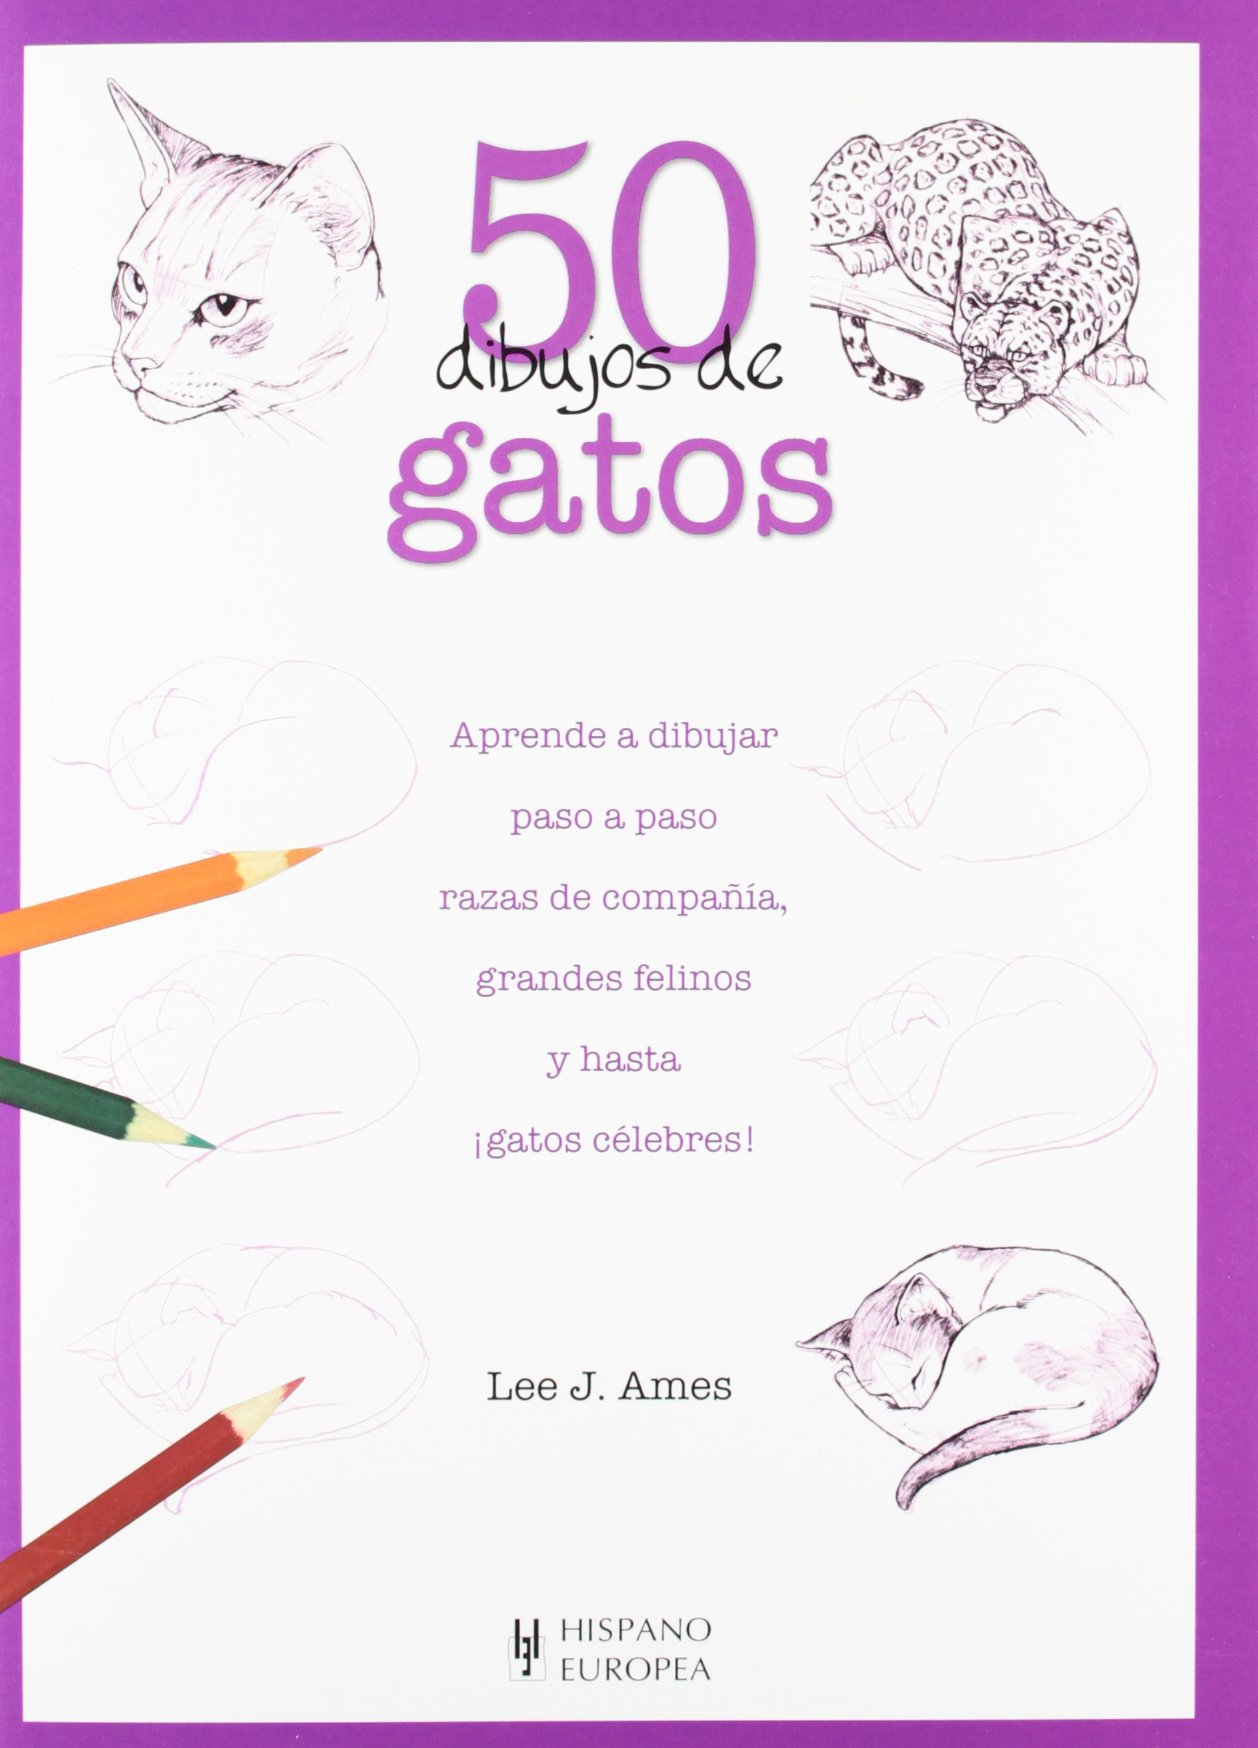 50 dibujos de gatos (Spanish Edition) (Spanish) Paperback – October 1, 2009